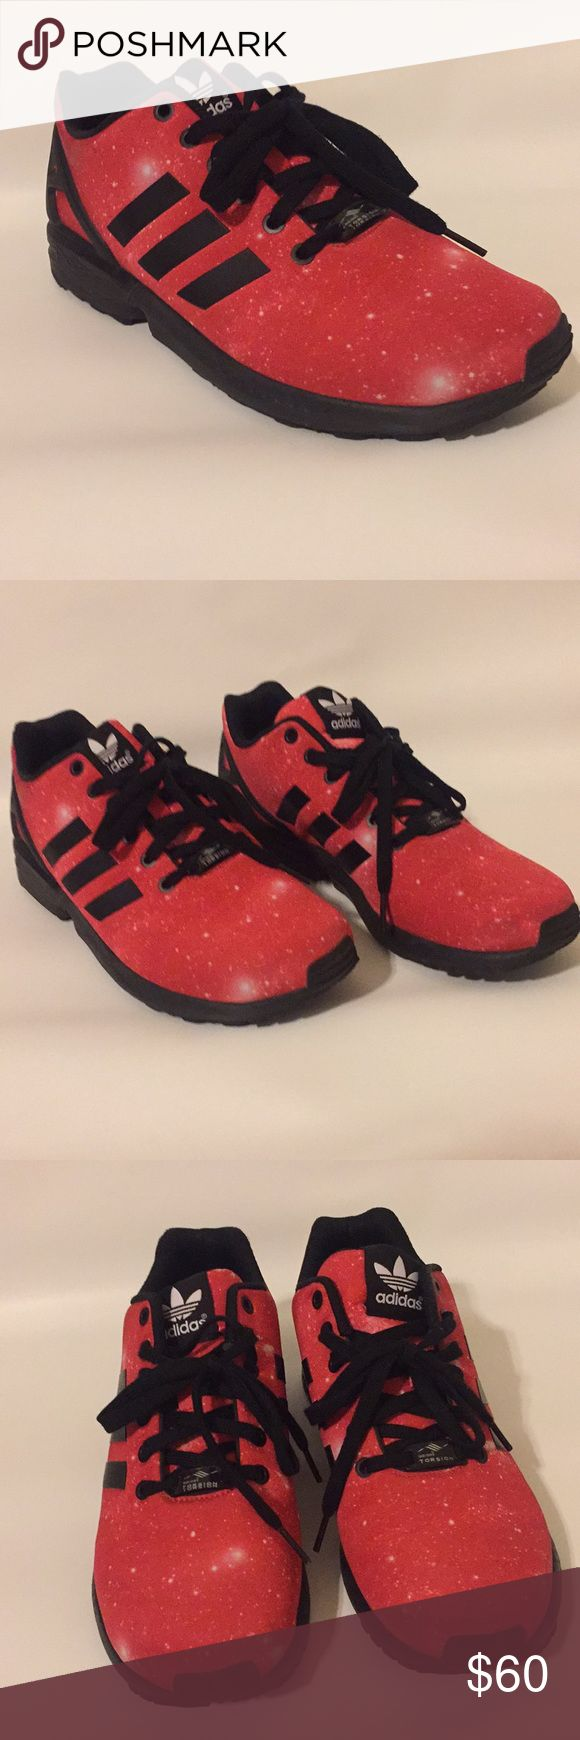 Adidas ZX Flux Worn once. In great condition. Shoe looks brand new. The writing inside the #shoes is still visible. Adidas Shoes Athletic Shoes